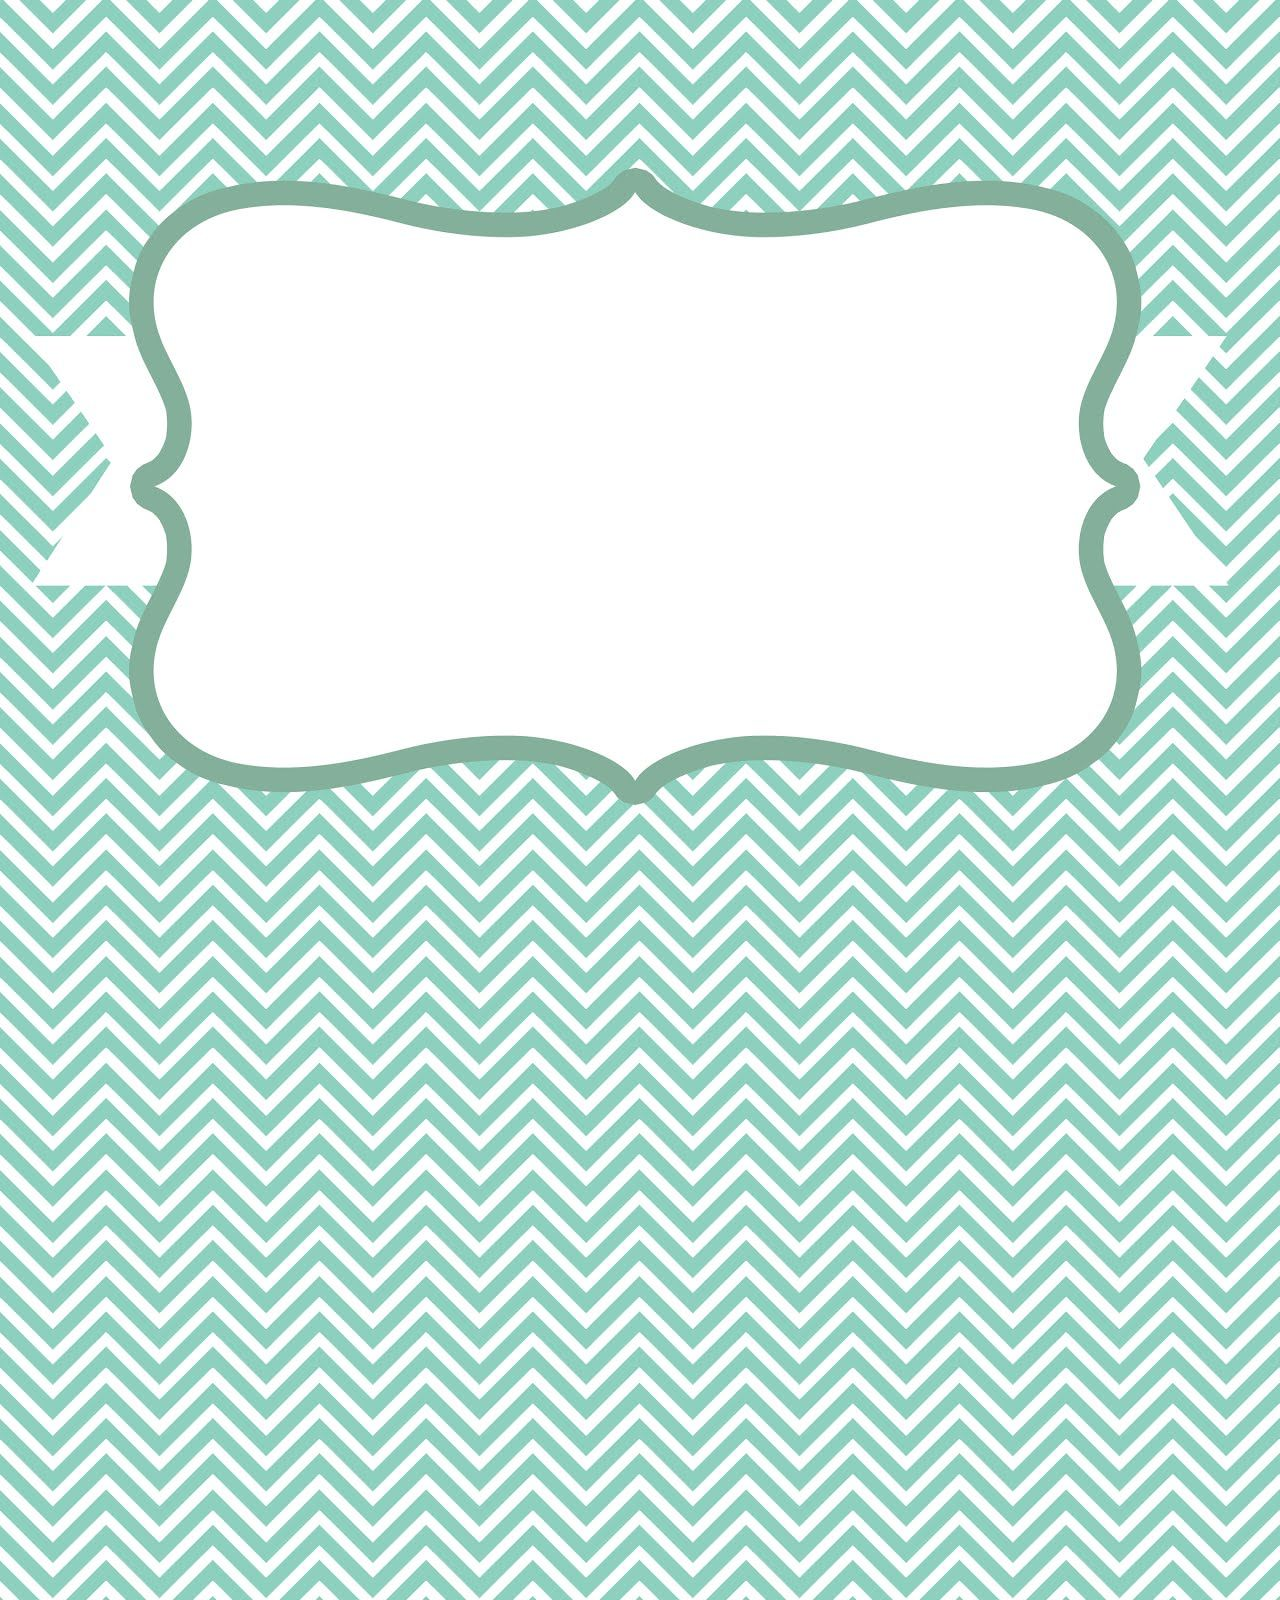 pin by shannon detrick on printable binder covers pinterest